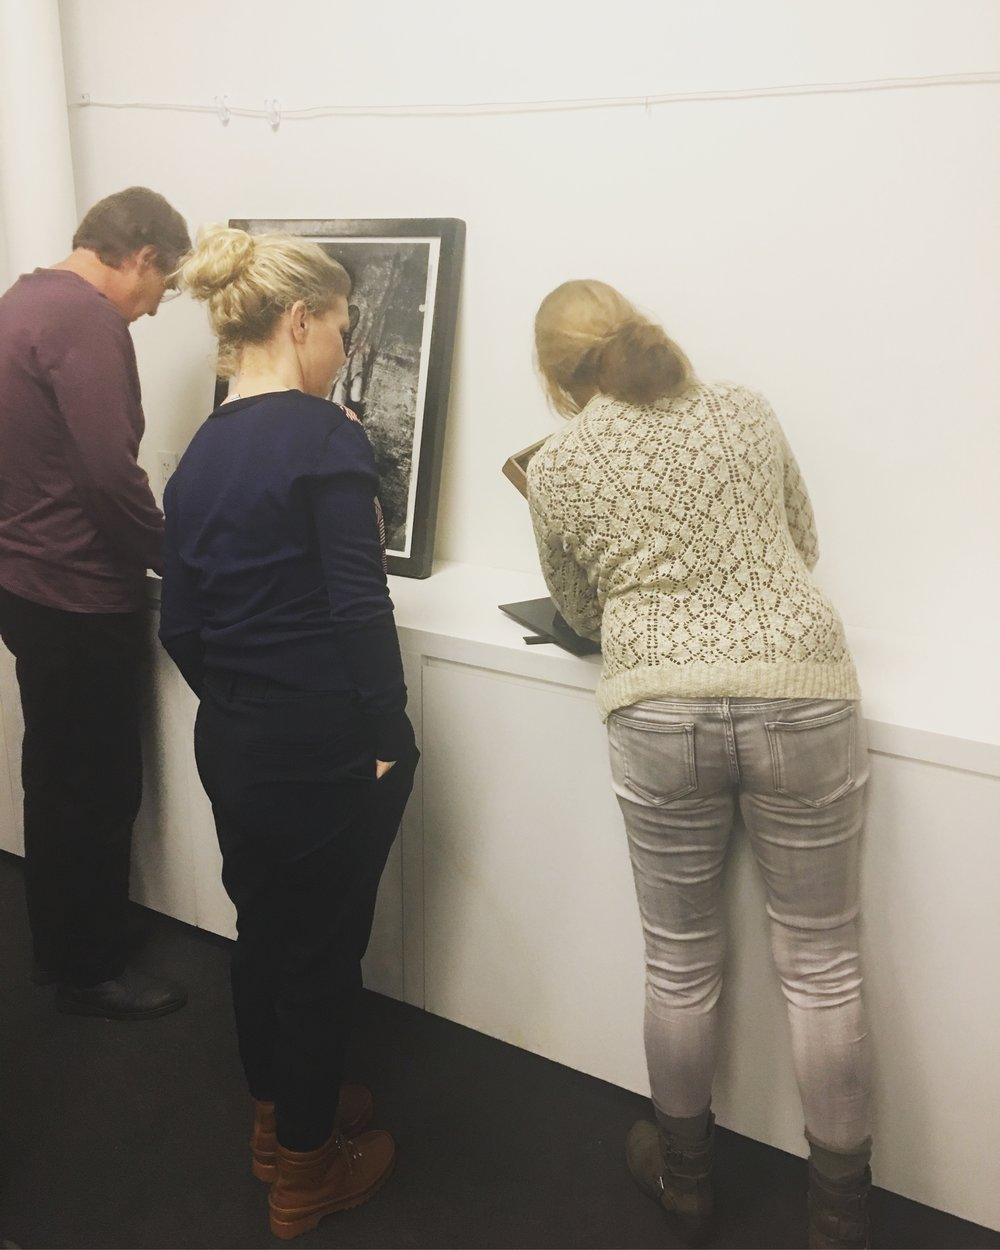 My work being critiqued by Curators and artist